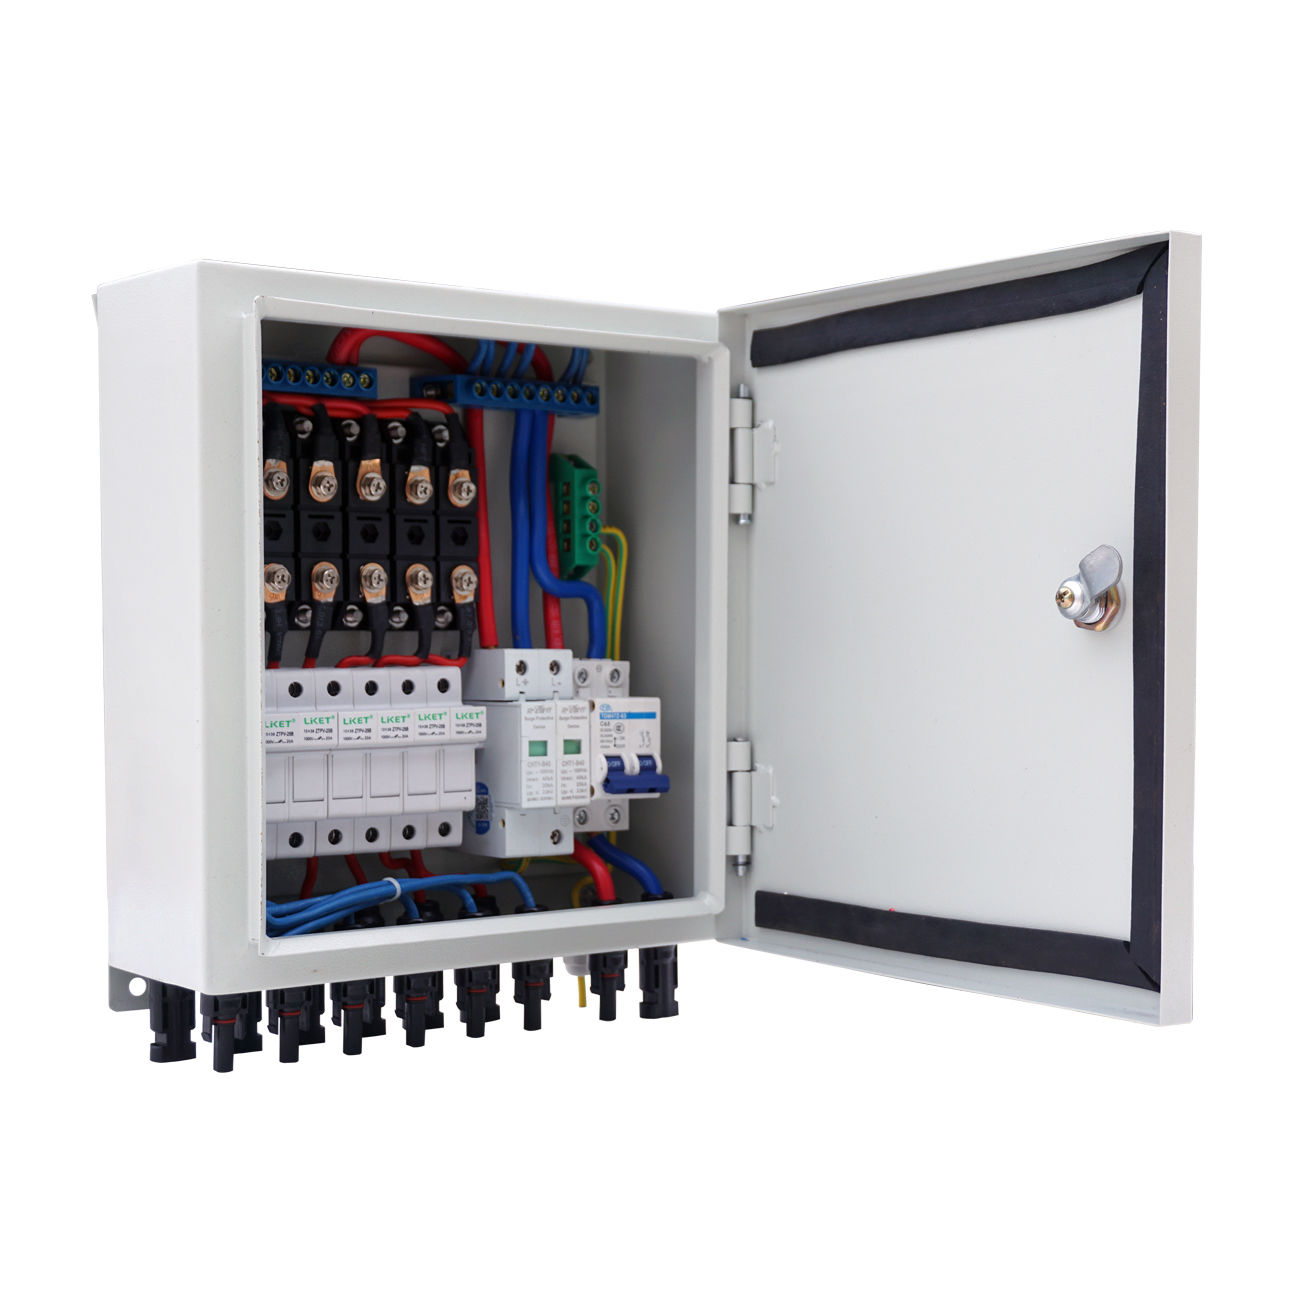 6 String Solar PV Array Combiner Box W Circuit Breakers Surge Lightning Protection for off grid solar energy system